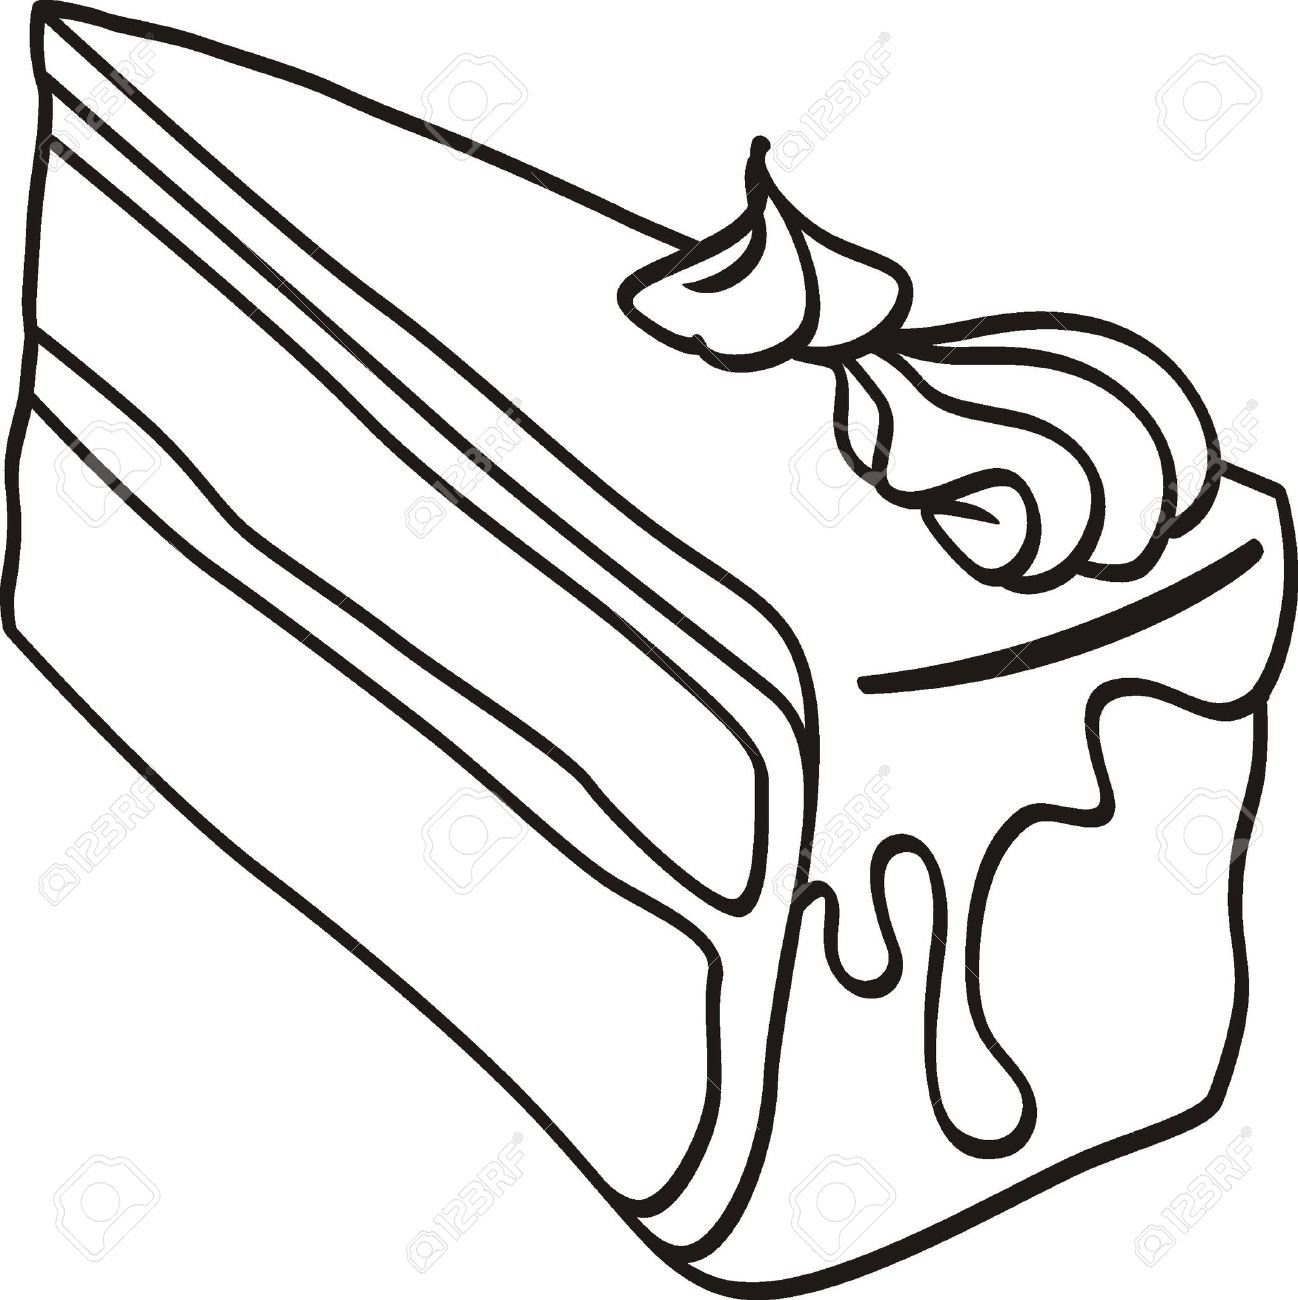 Slice of cake black and white clipart picture black and white library Slice of cake clipart black and white 5 » Clipart Station picture black and white library